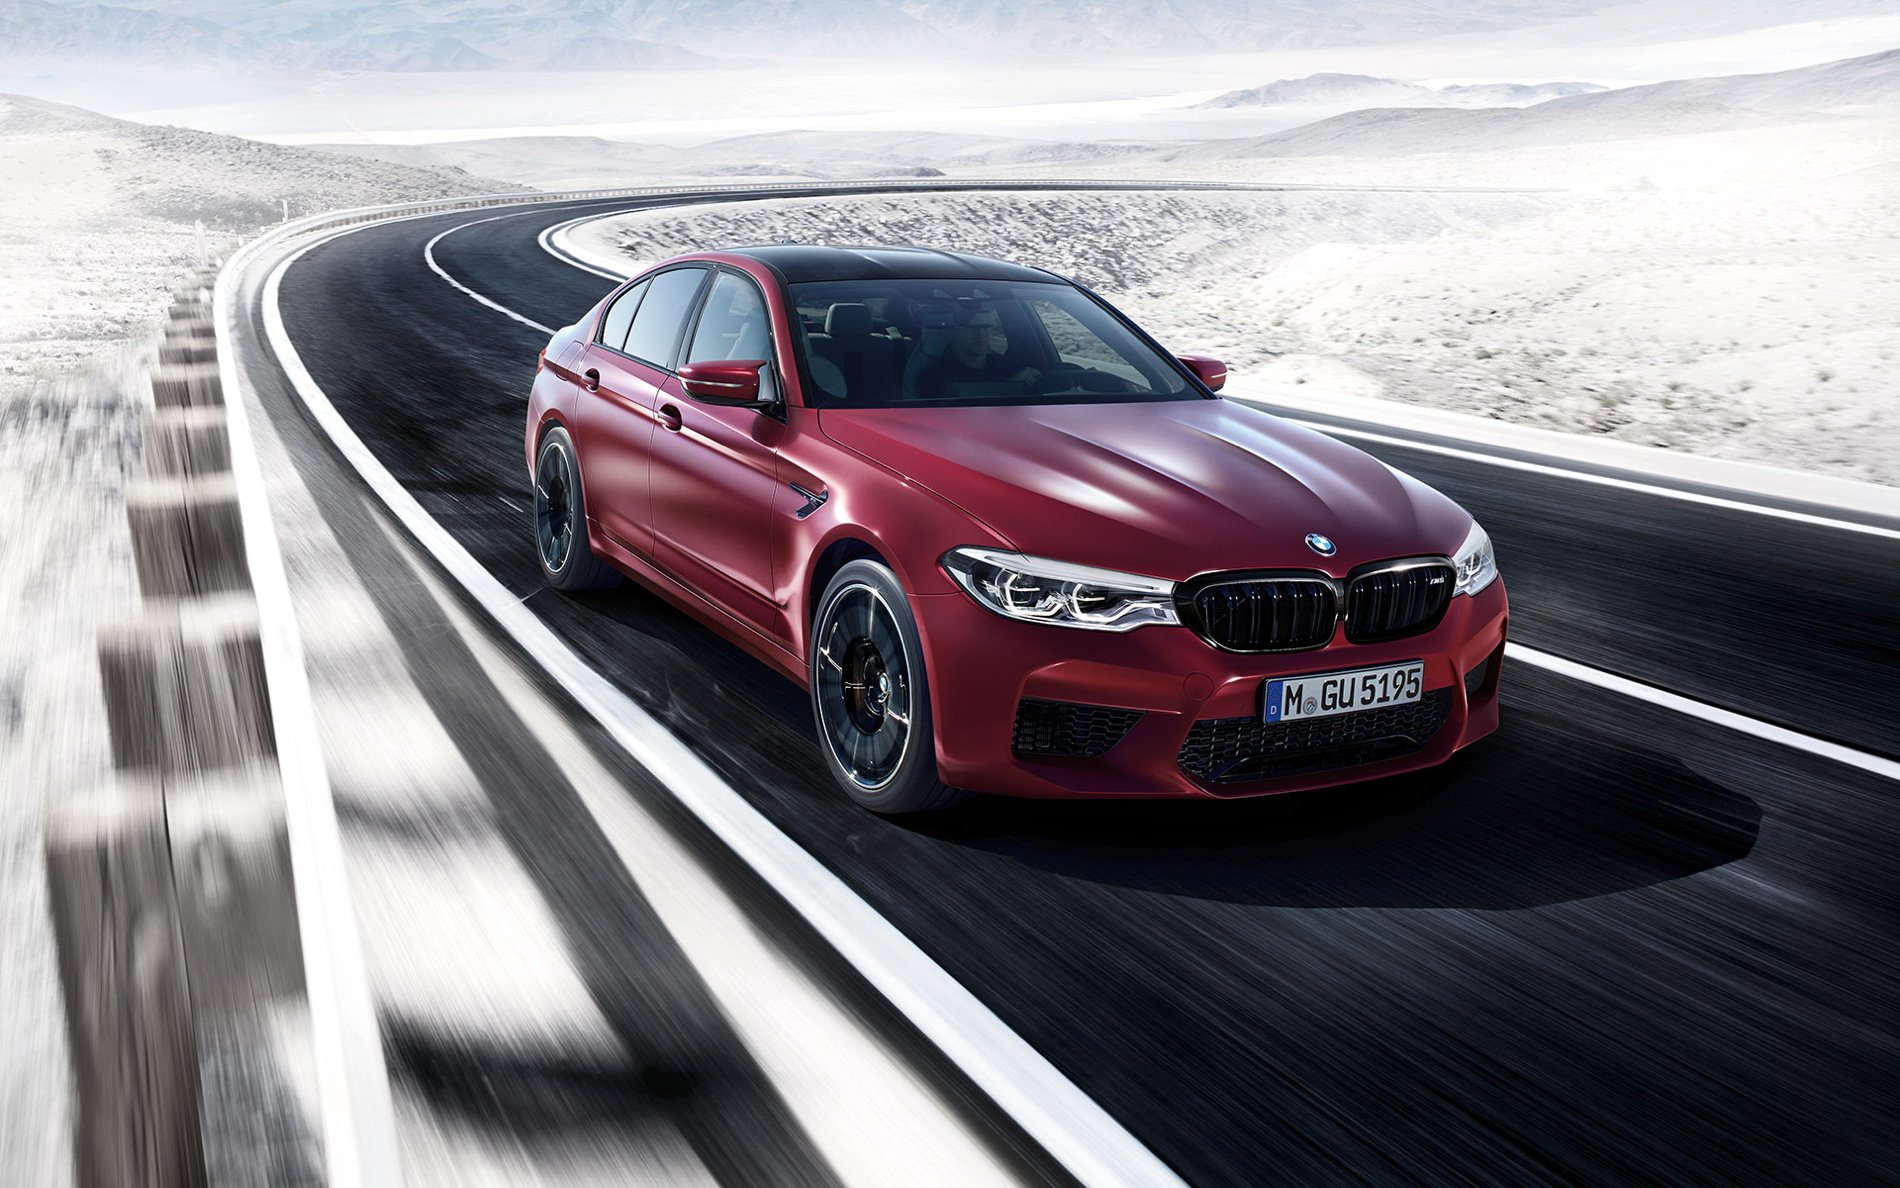 """""""Bmw M5 Wallpaper Hd Pics The New Androids Carspied"""" — card from user seva0501 in Yandex Collections"""